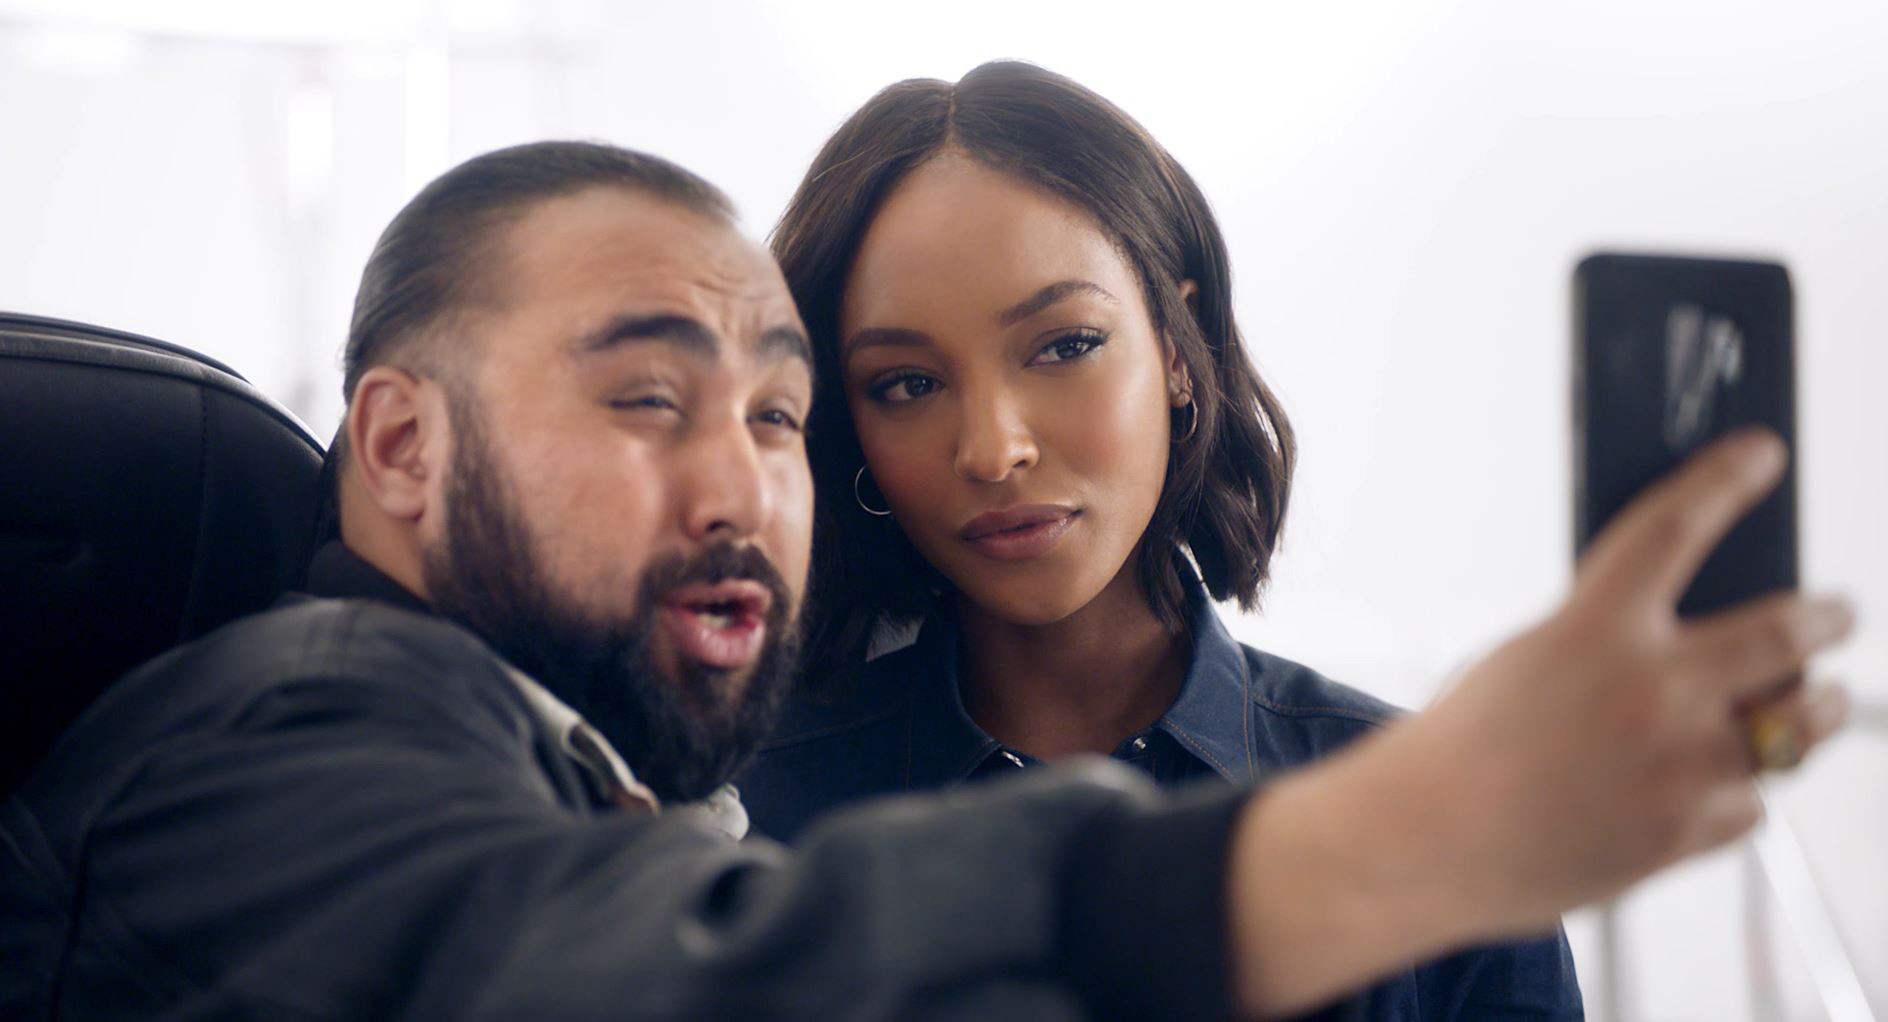 Jourdan Dunn auditions for BA Safety Video